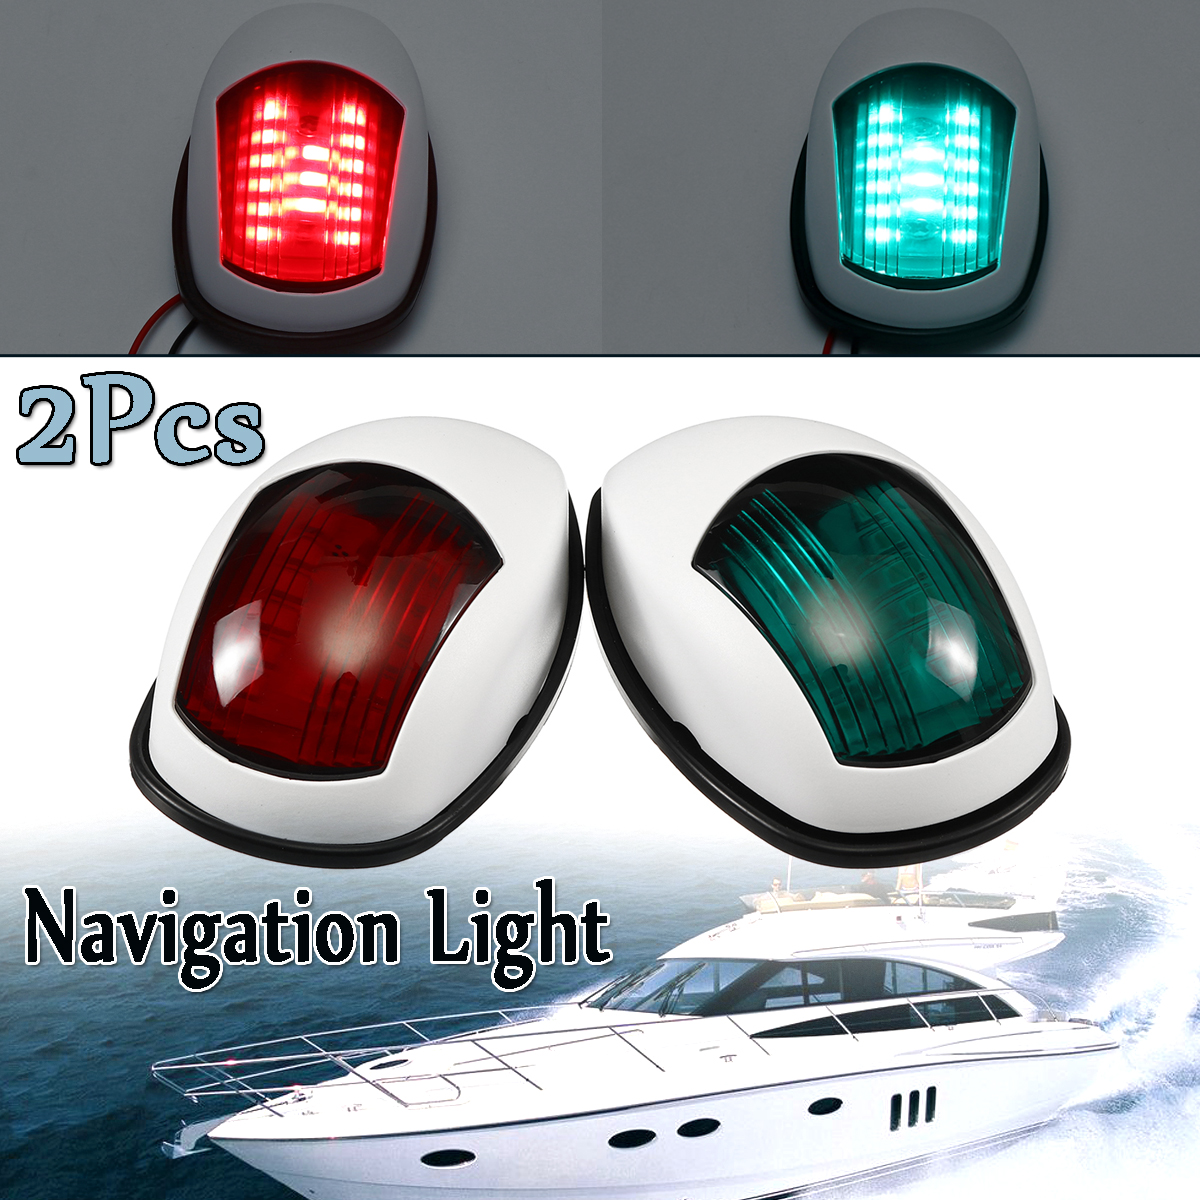 Automobiles & Motorcycles Beler Car Abs Led Light Electronic Navigation Compass Fit For Marine Boat Sail Ship Vehicle Car Confirming Navigation Directions Pure White And Translucent Atv,rv,boat & Other Vehicle